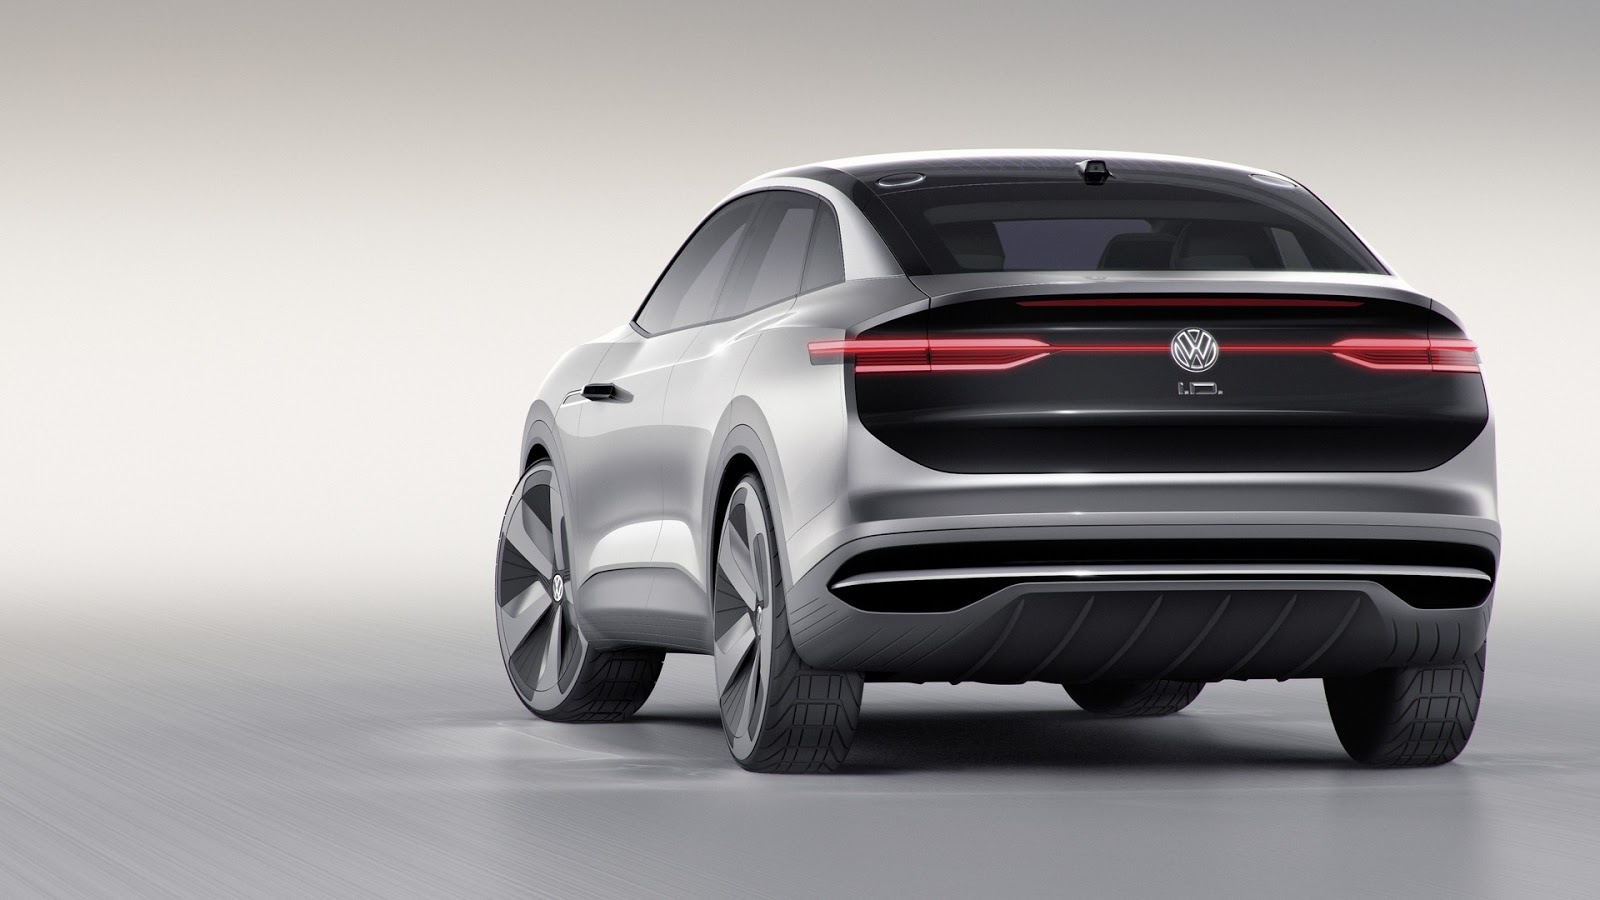 volkswagen i d crozz concept shows the way for electric crossovers. Black Bedroom Furniture Sets. Home Design Ideas